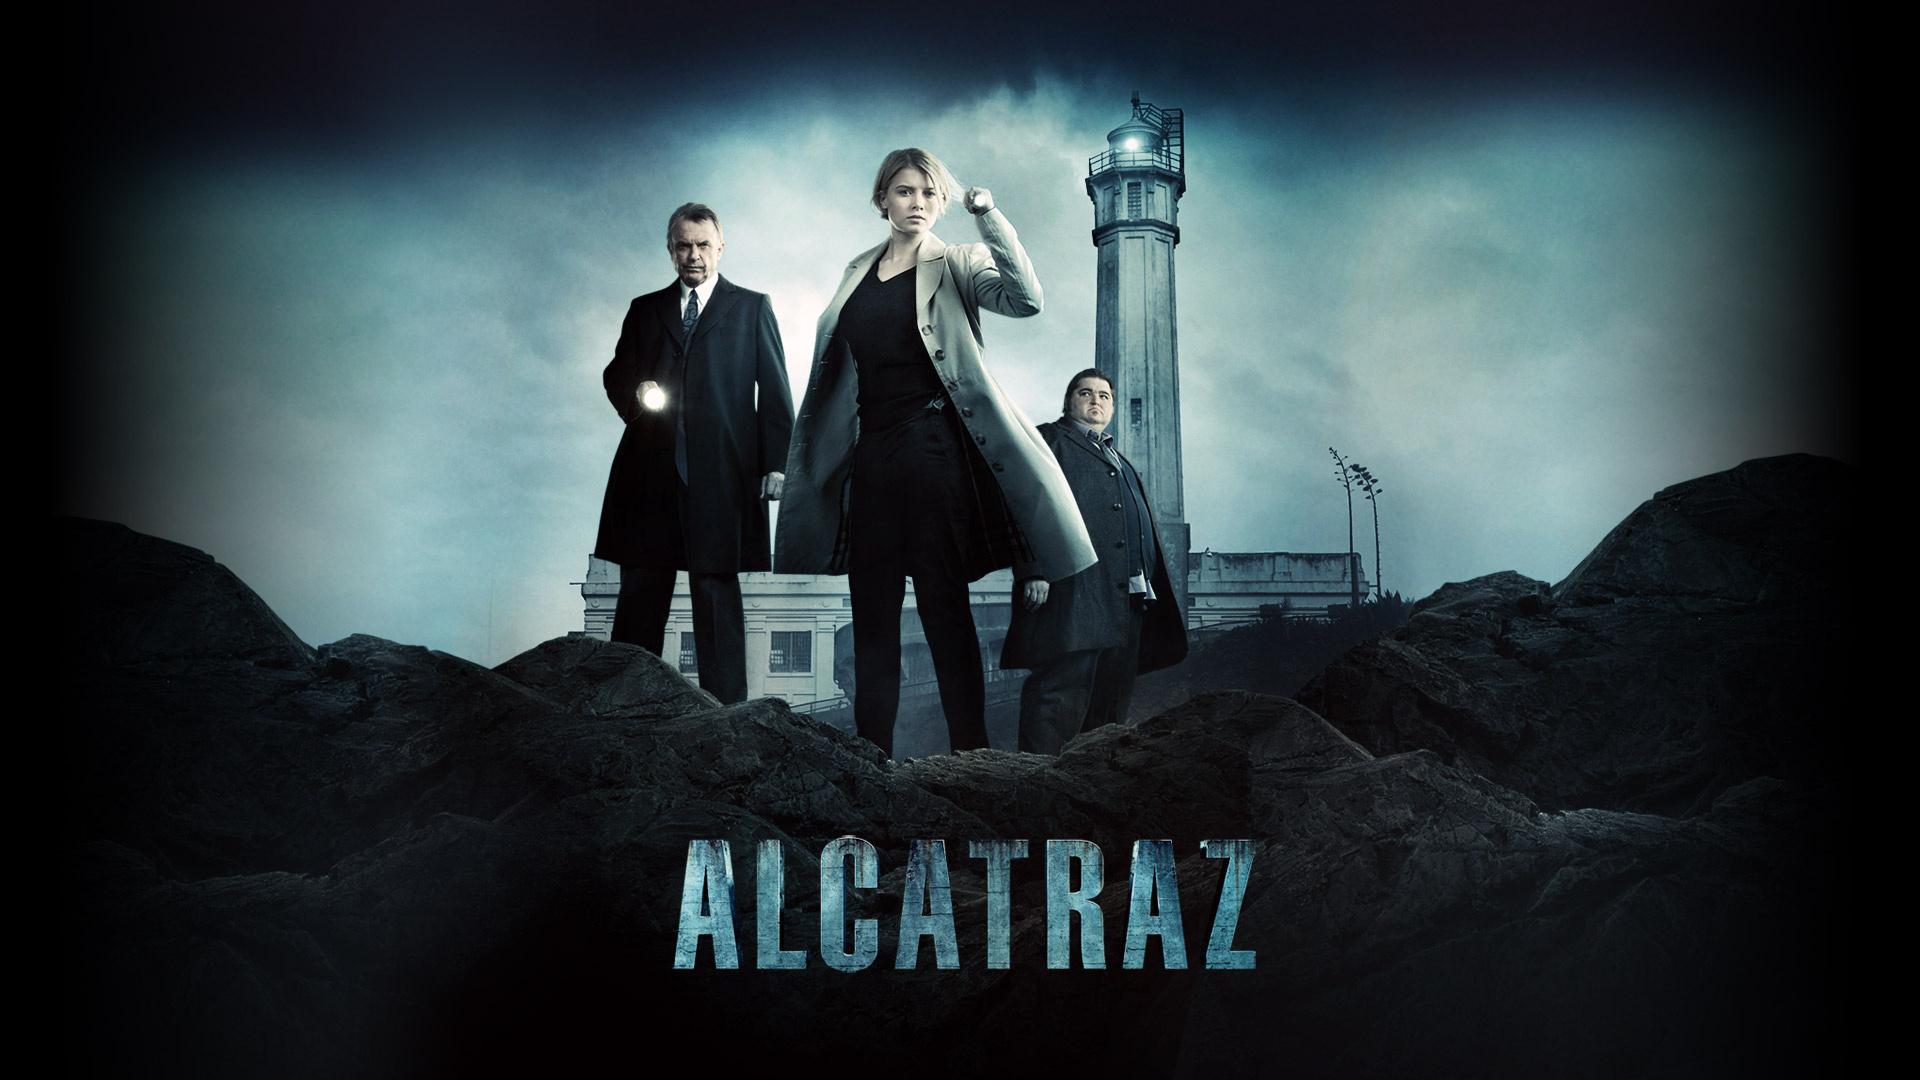 16 alcatraz hd wallpapers | background images - wallpaper abyss